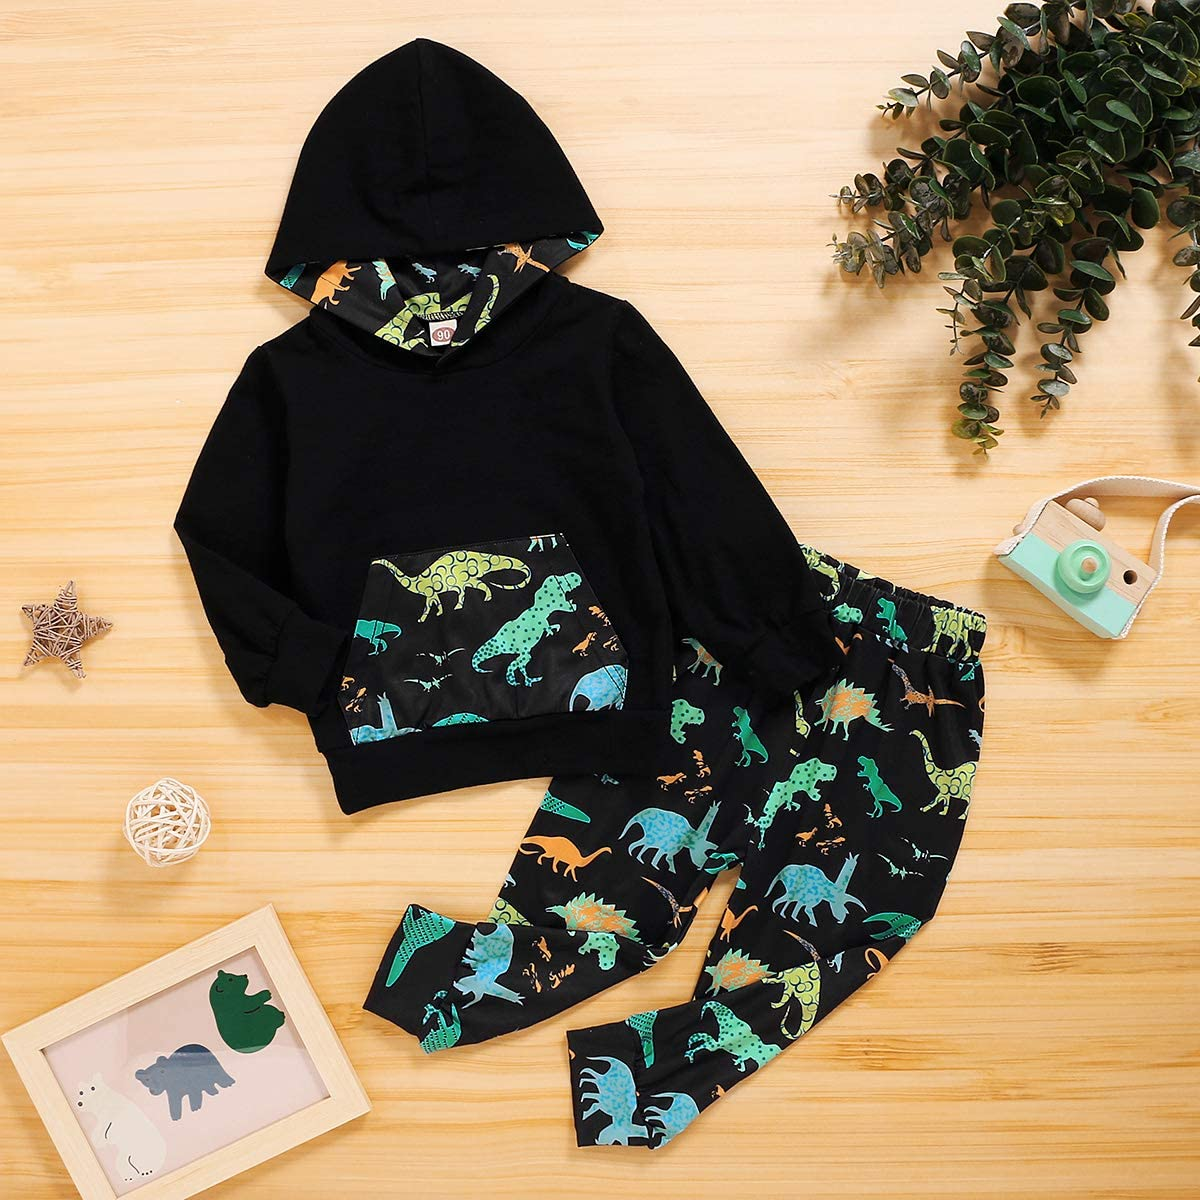 puseky 2pcs Kids Toddler Boy Fashion Dinosaur Clothes Hoodie Shirt+Pants Outfits Tracksuit Set